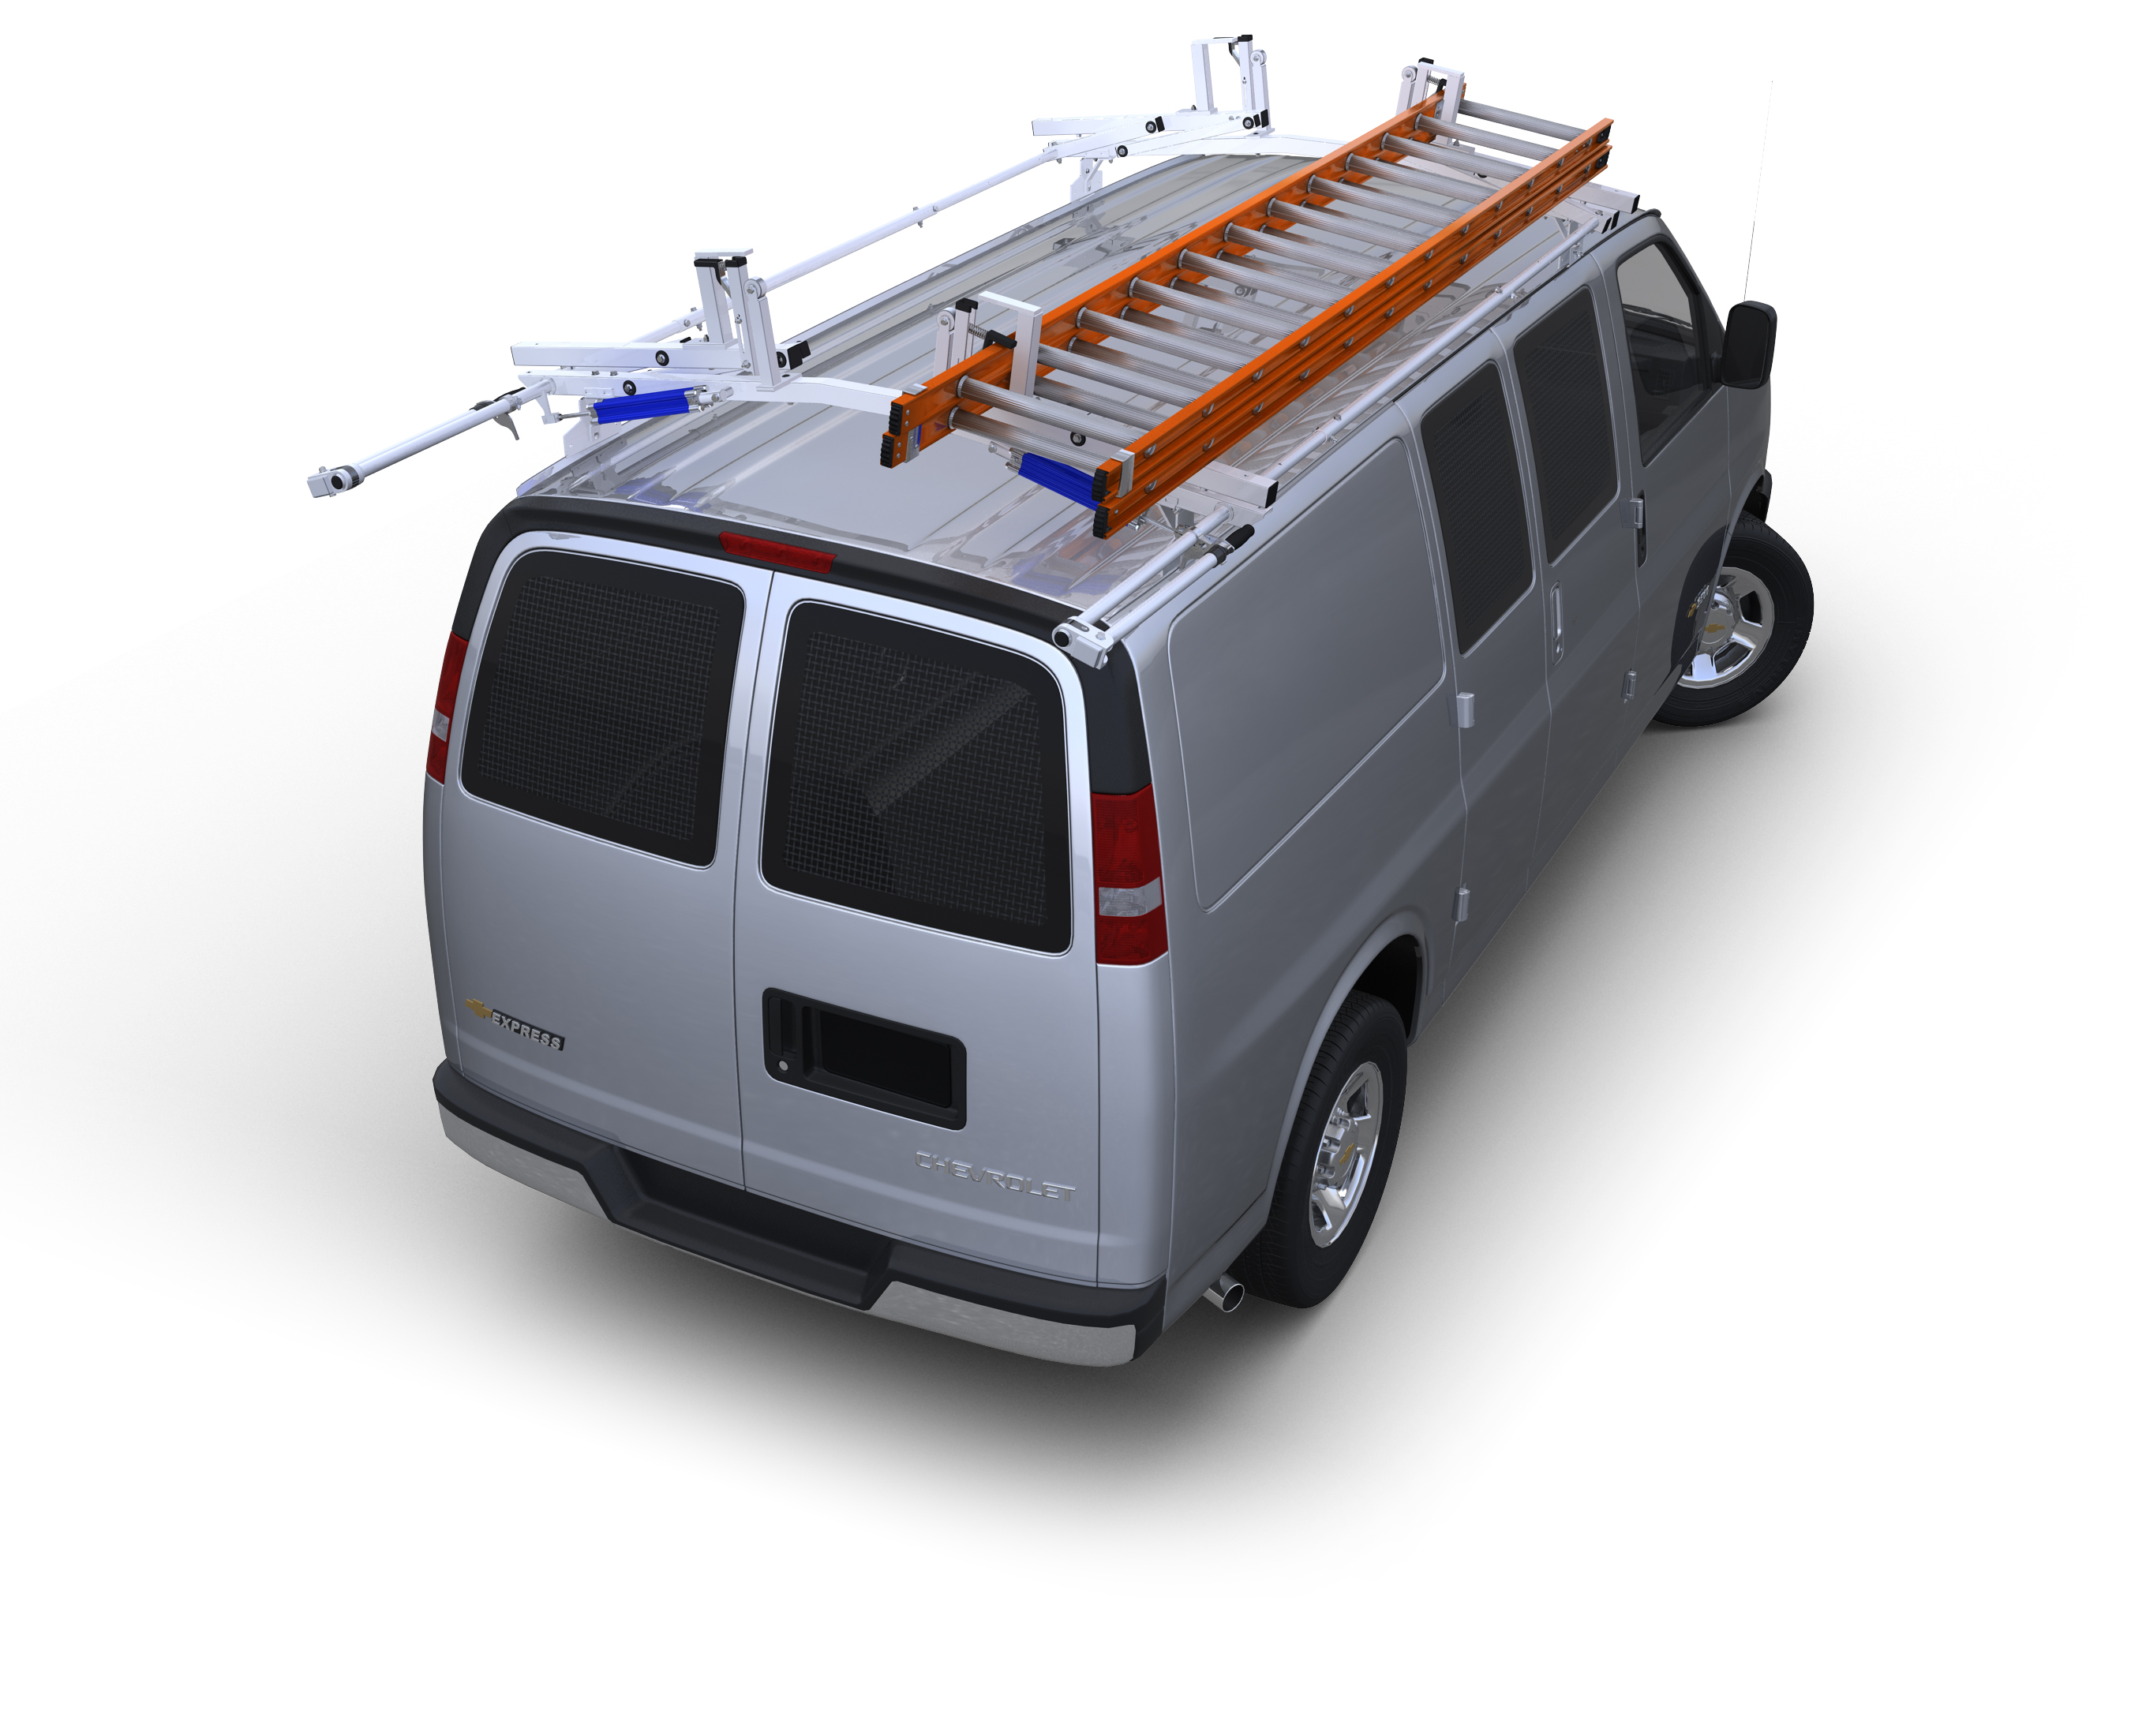 2014 & Newer Transit Connect Long WB General Service Van Package, Aluminum Shelving - SAVE $100!